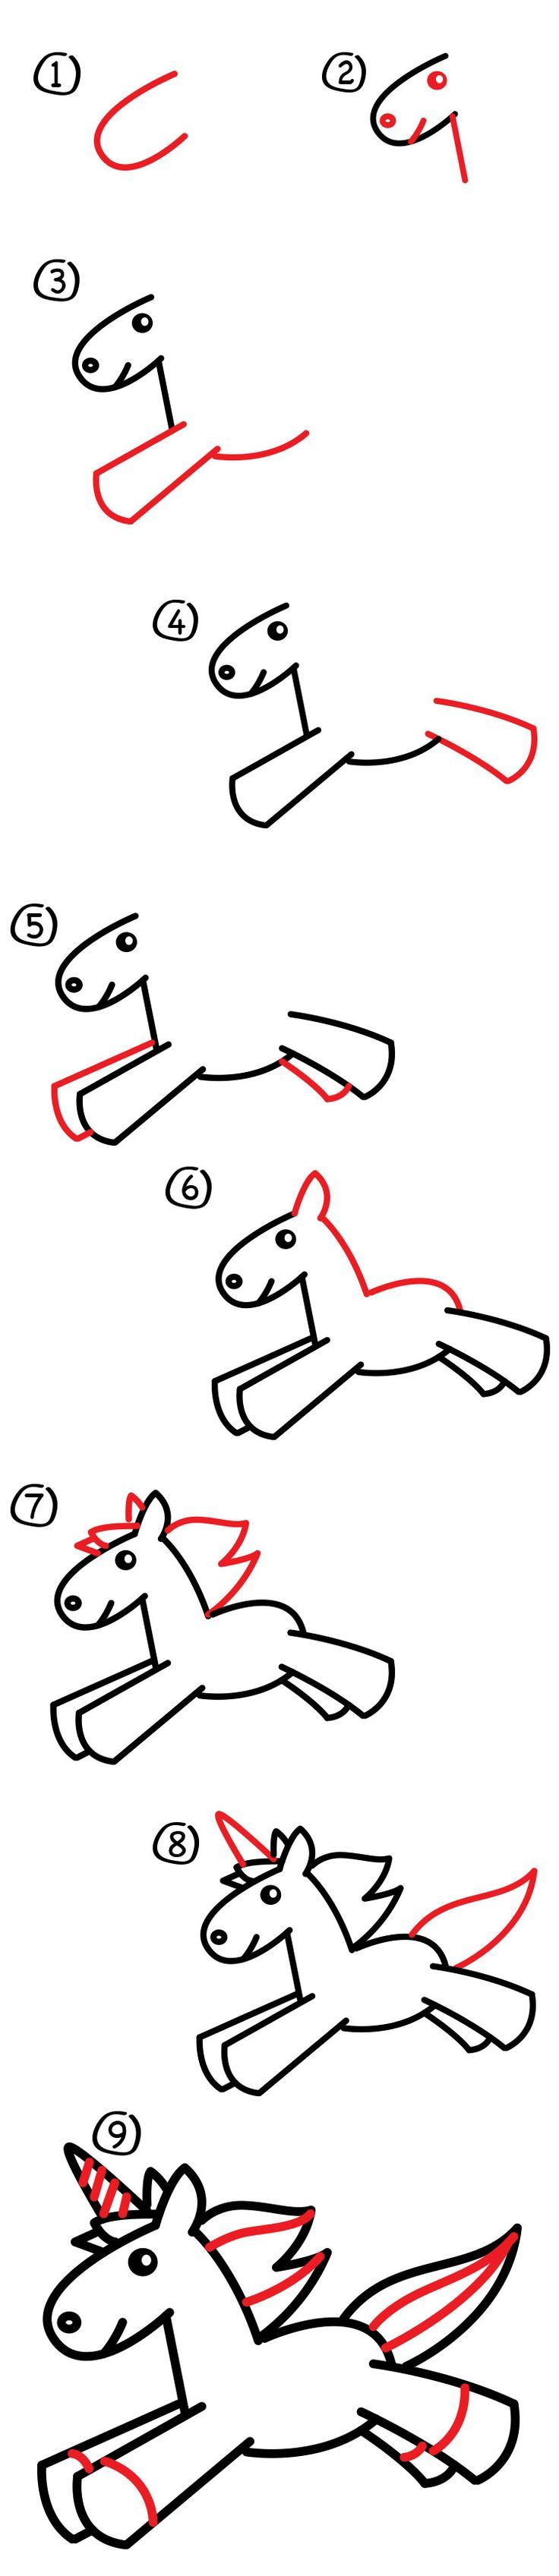 How To Draw A Unicorn For Kids Drawing How To Step By